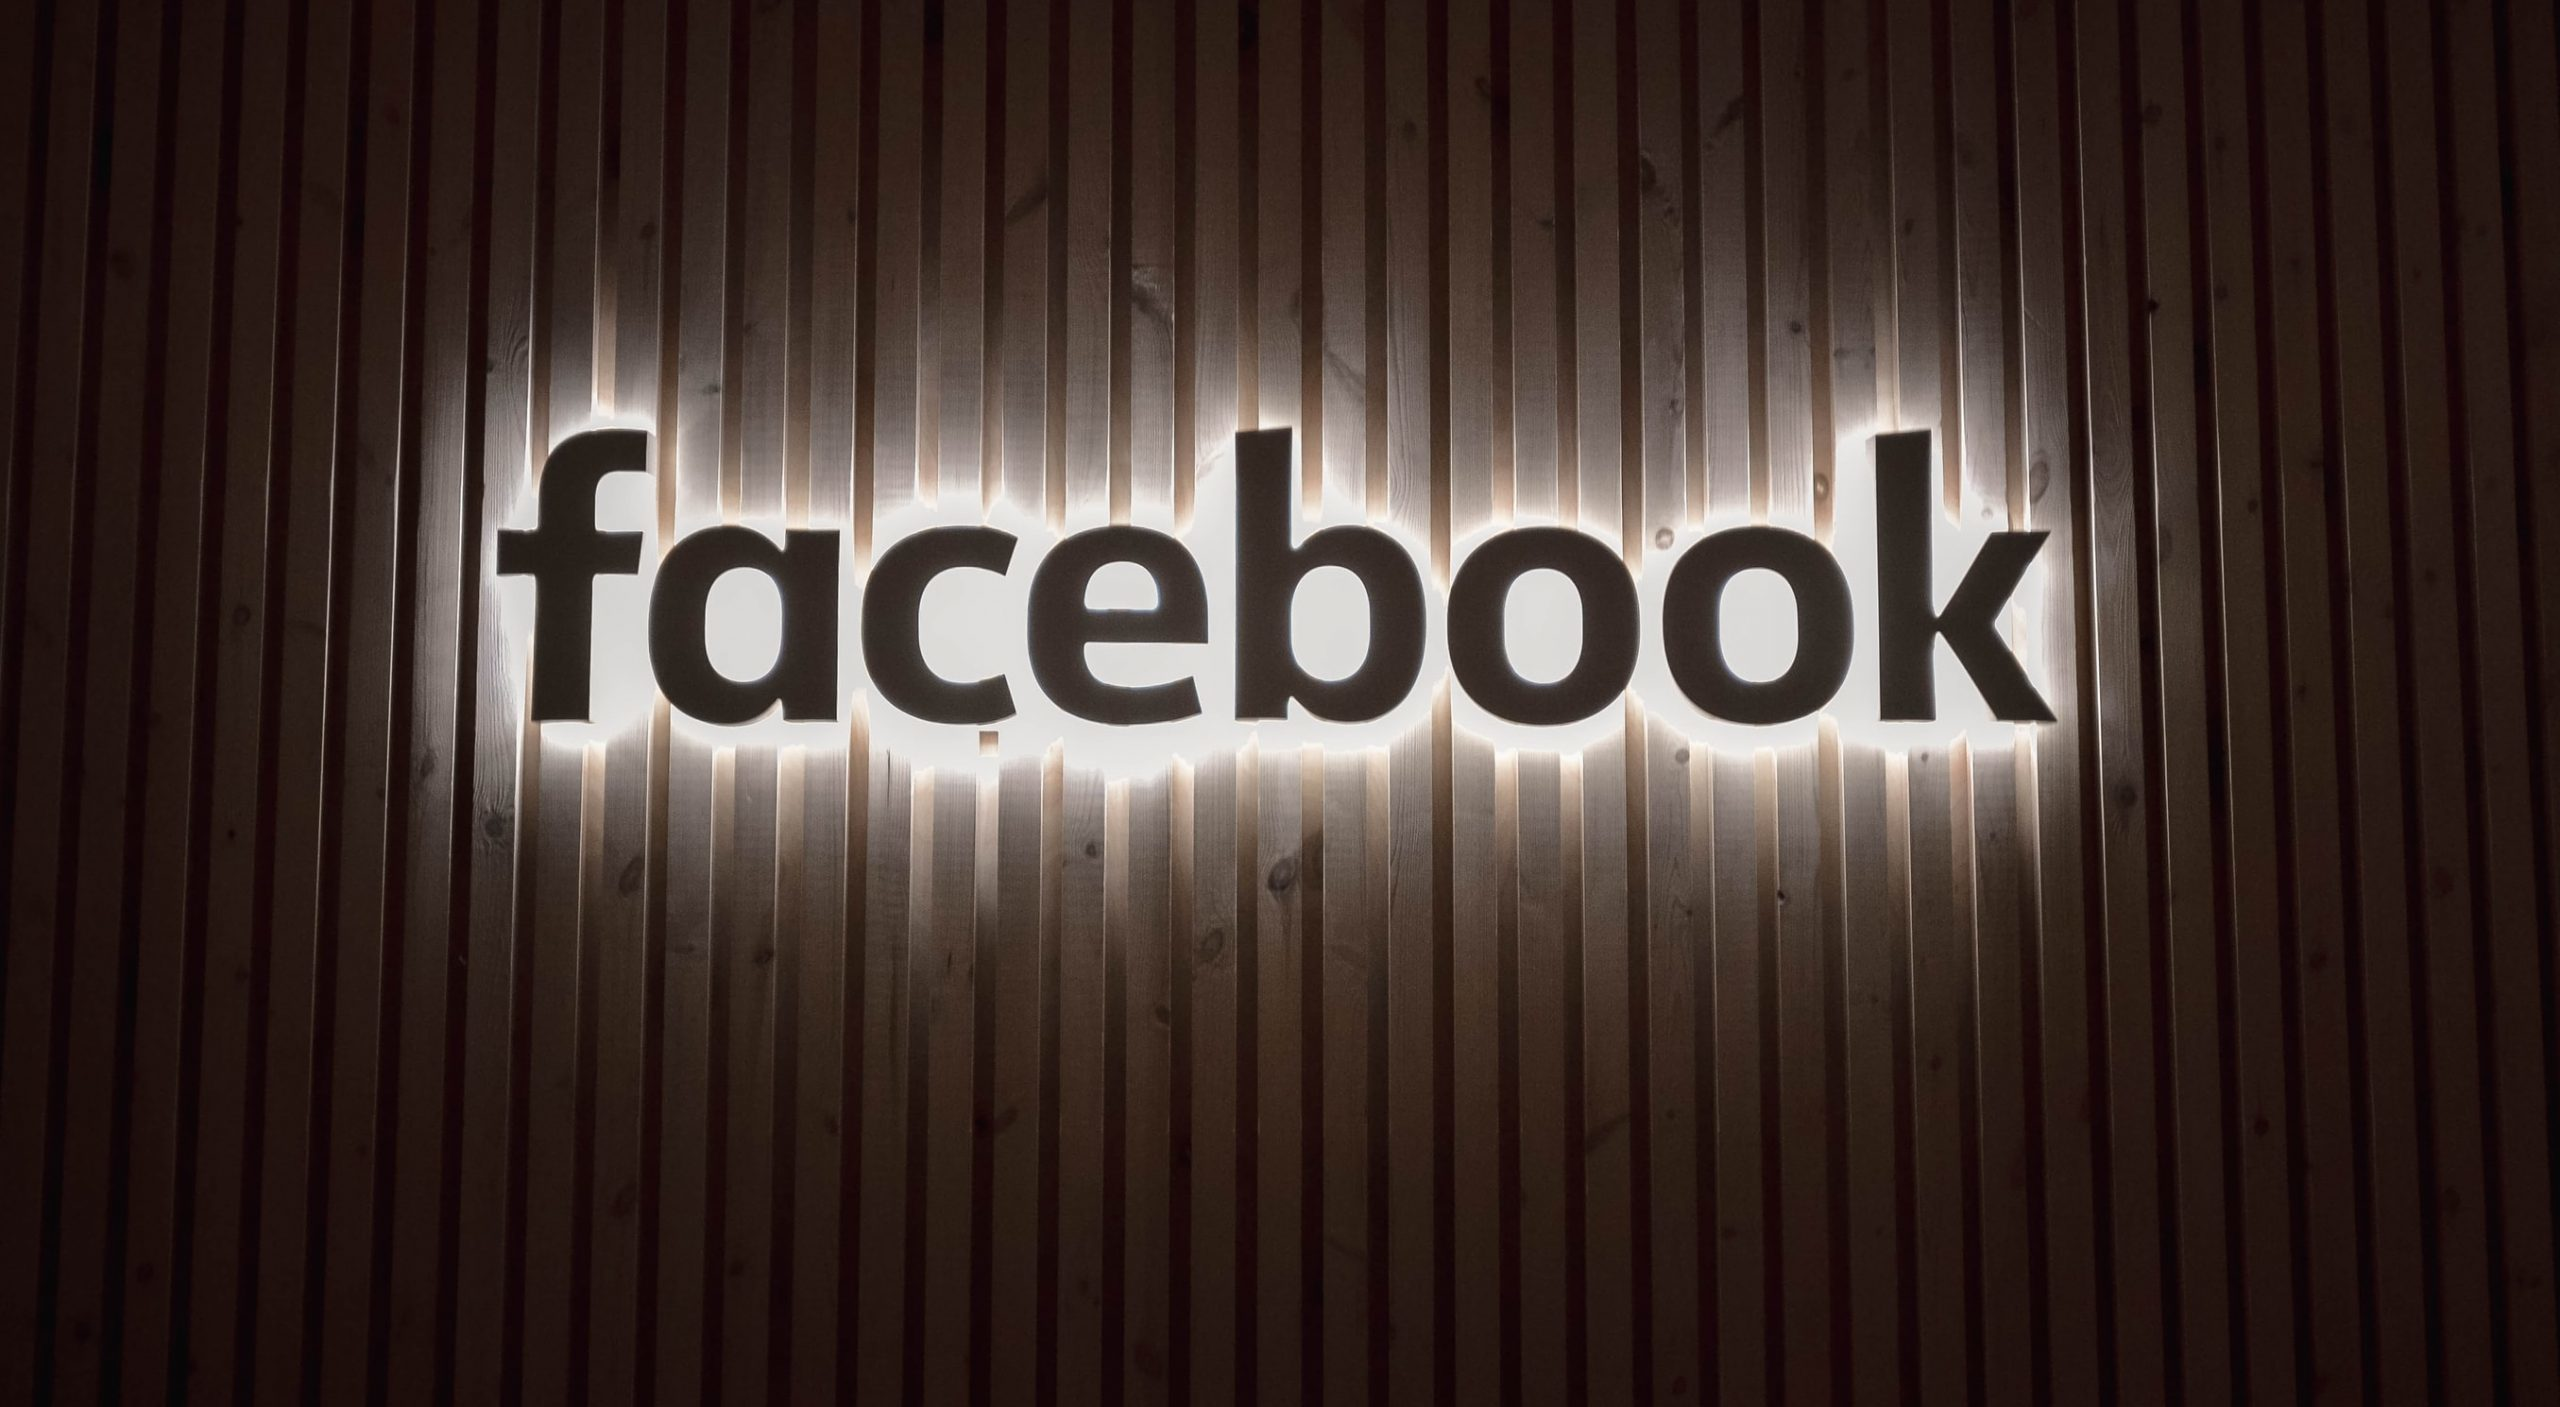 Image of Facebook sign